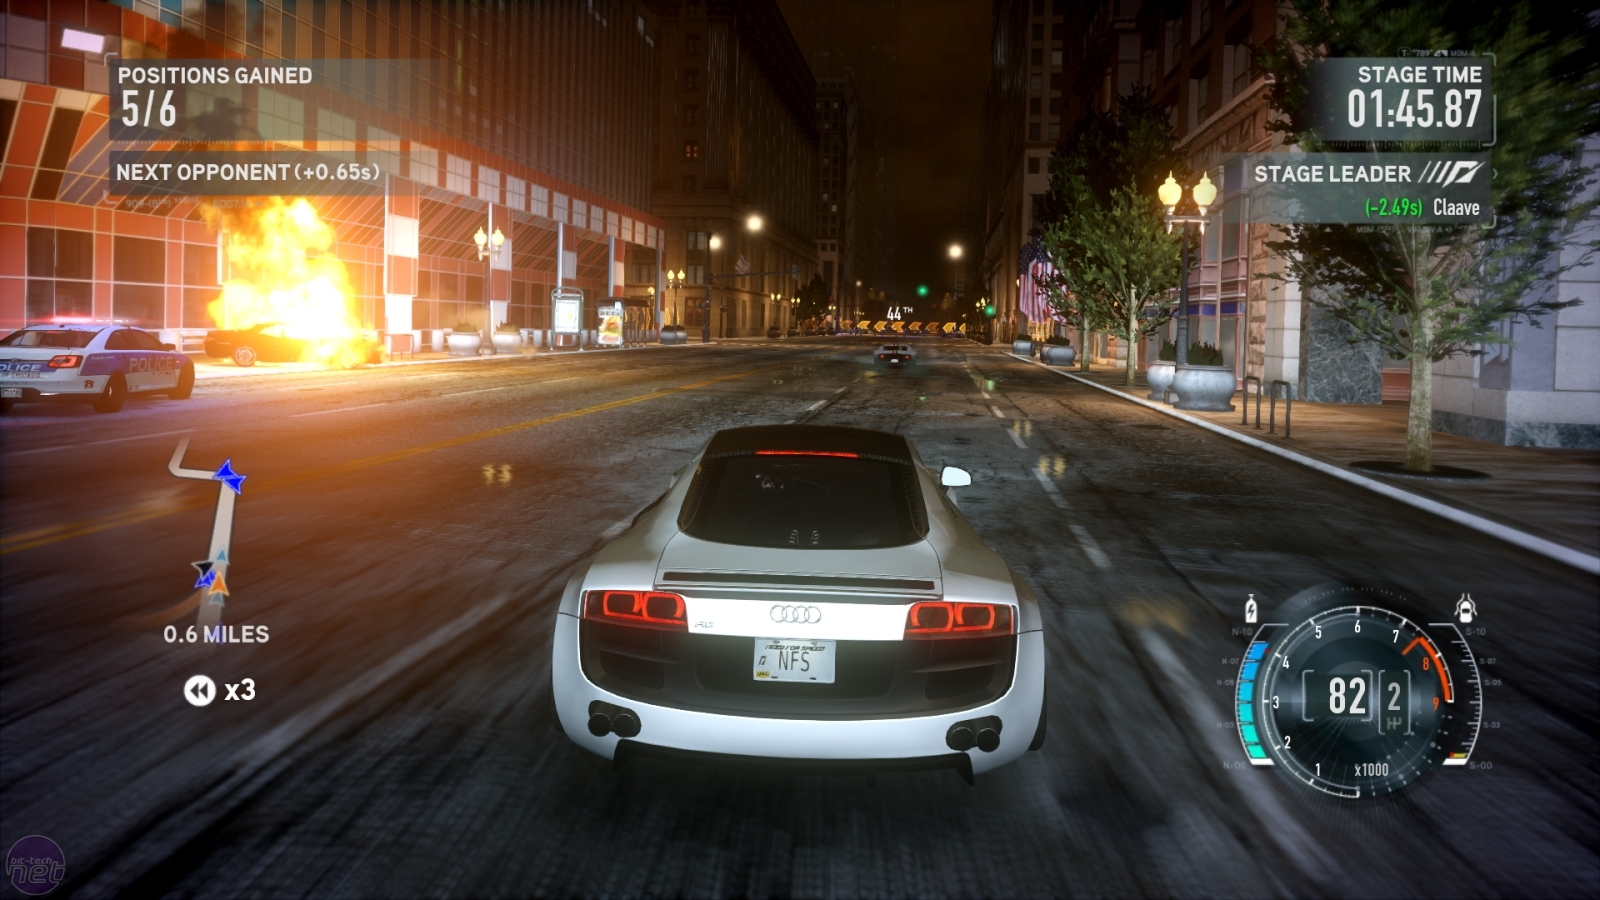 Nfs Most Wanted 2012 Cars Wallpapers Need For Speed The Run Review Bit Tech Net